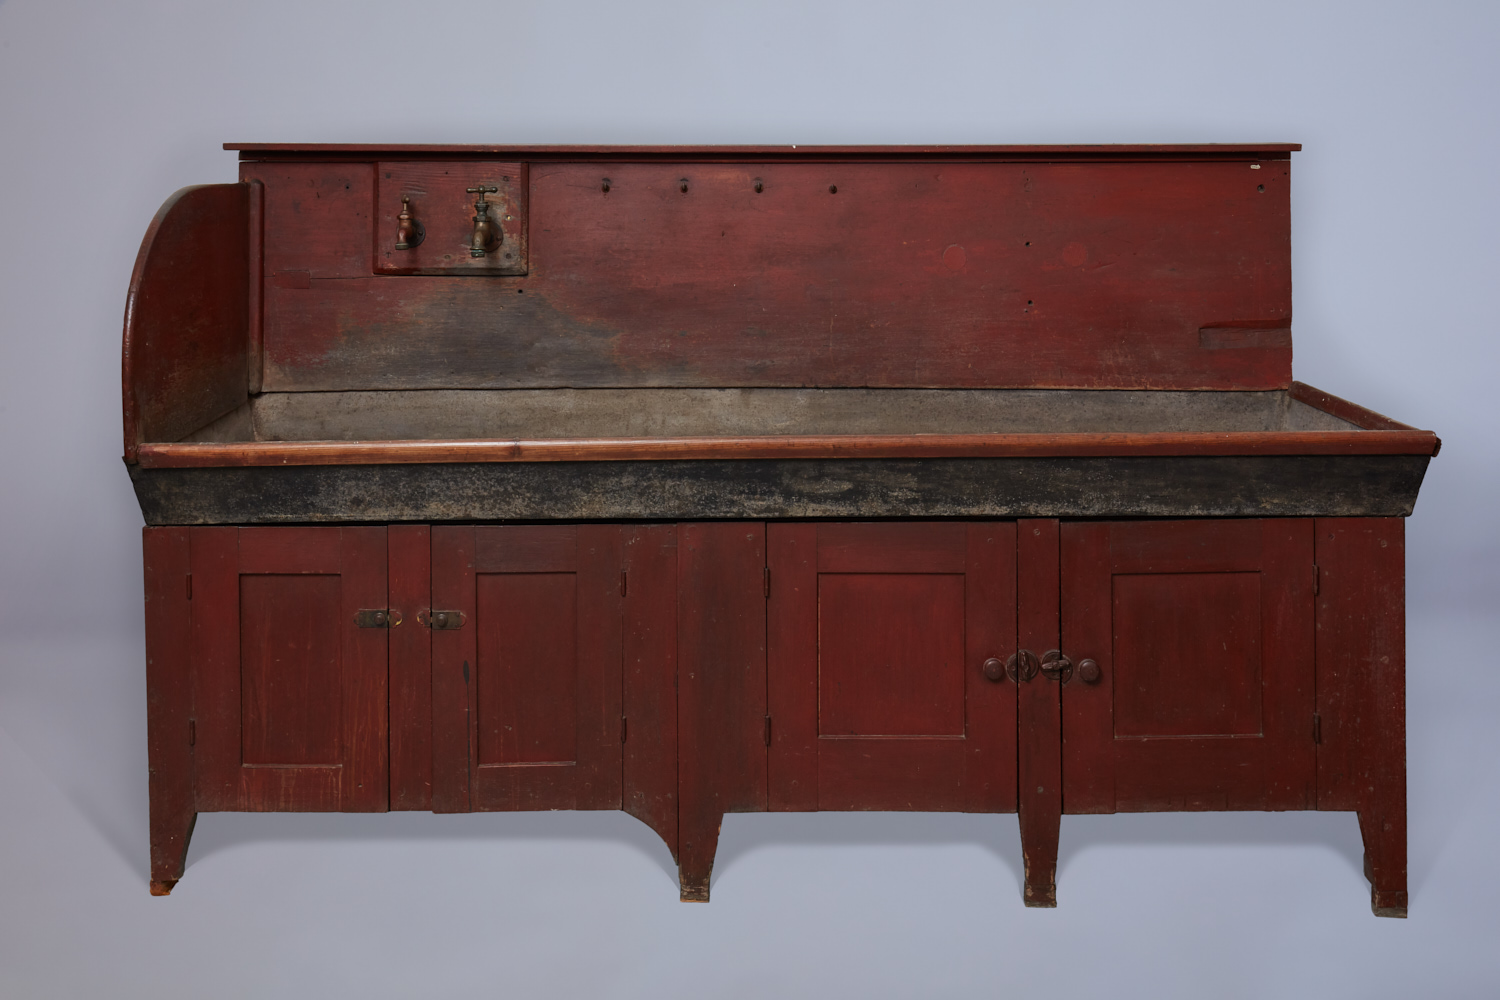 Canning Kitchen Sink, North Family, Mount Lebanon, NY, ca. 1840s